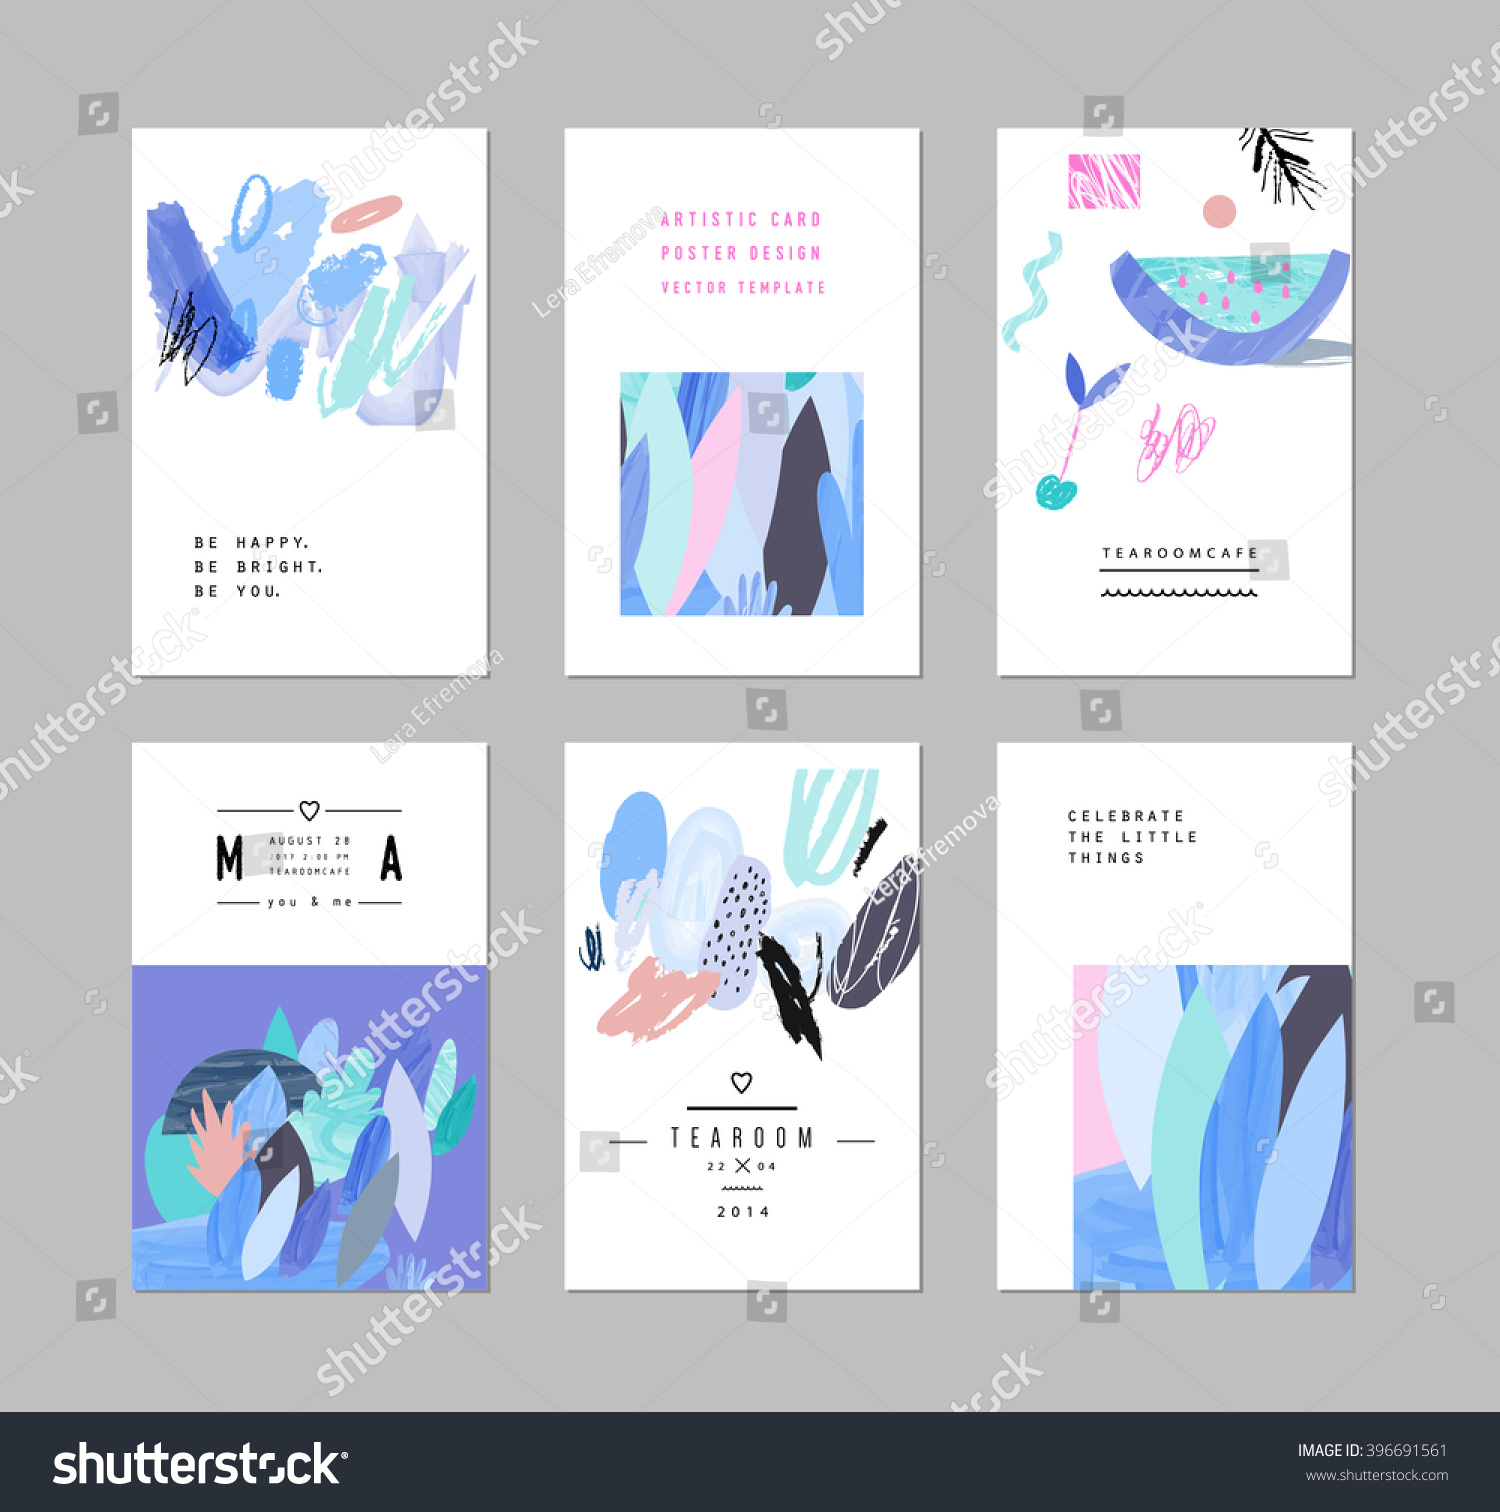 Elements of a poster design - Collection Of Creative Cards And Posters With Floral Elements Hand Drawn Textures Design For